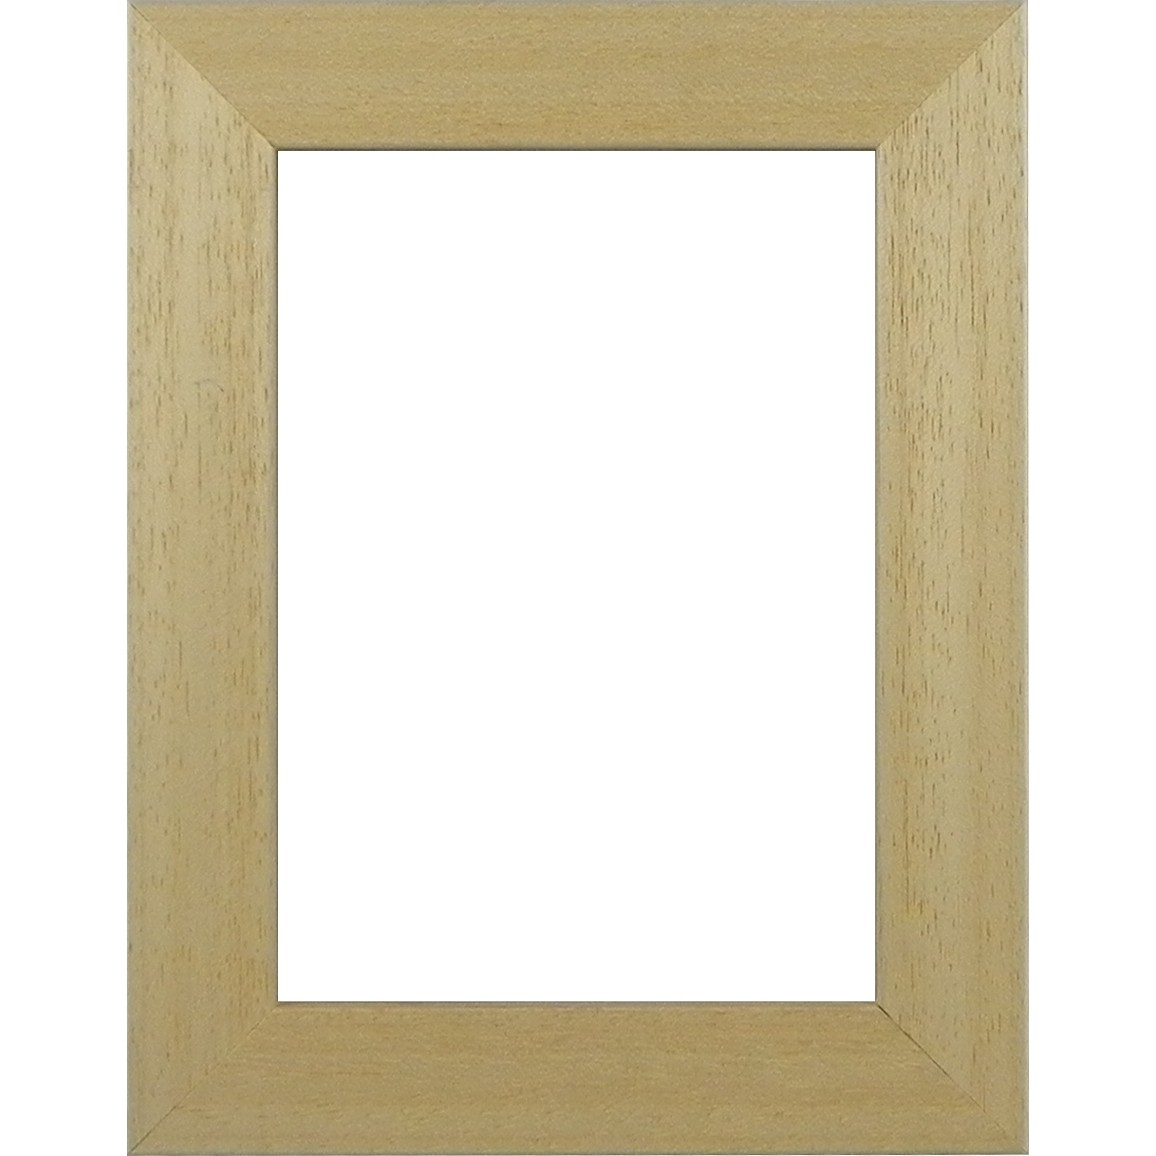 Picture Frame Square Box medium Natural Timber